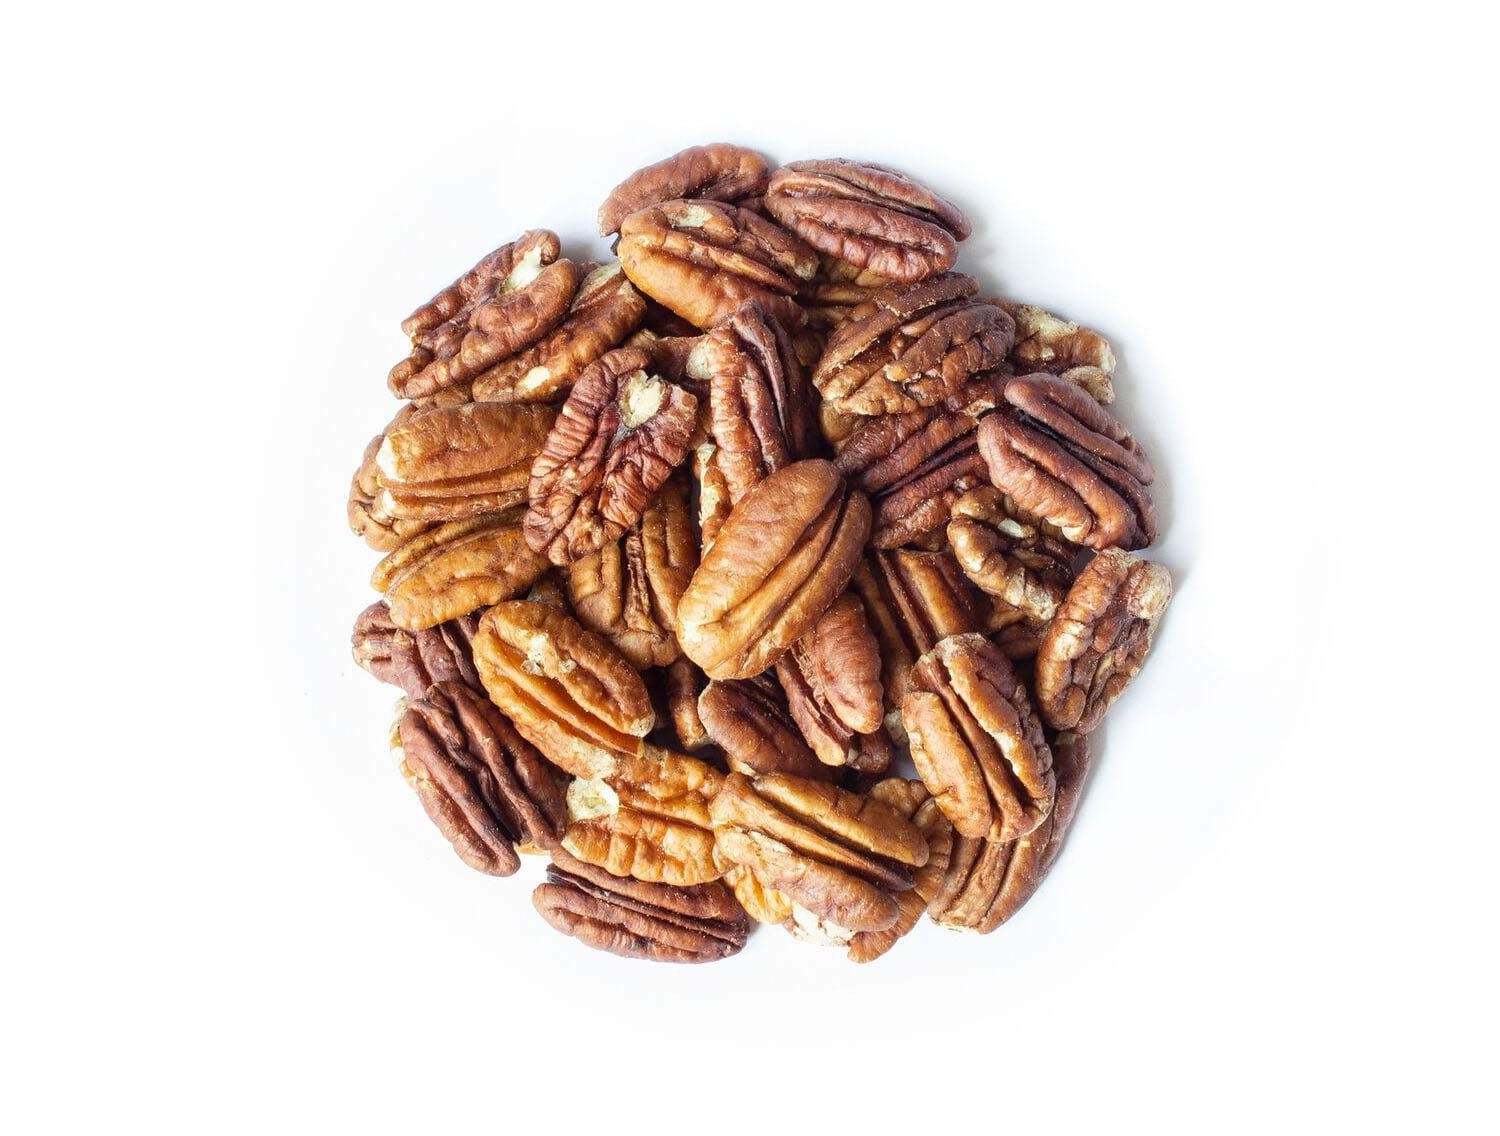 Organic Pecans, 30 Pounds - Non-GMO, Kosher, Raw, Vegan, No Shell by Food to Live